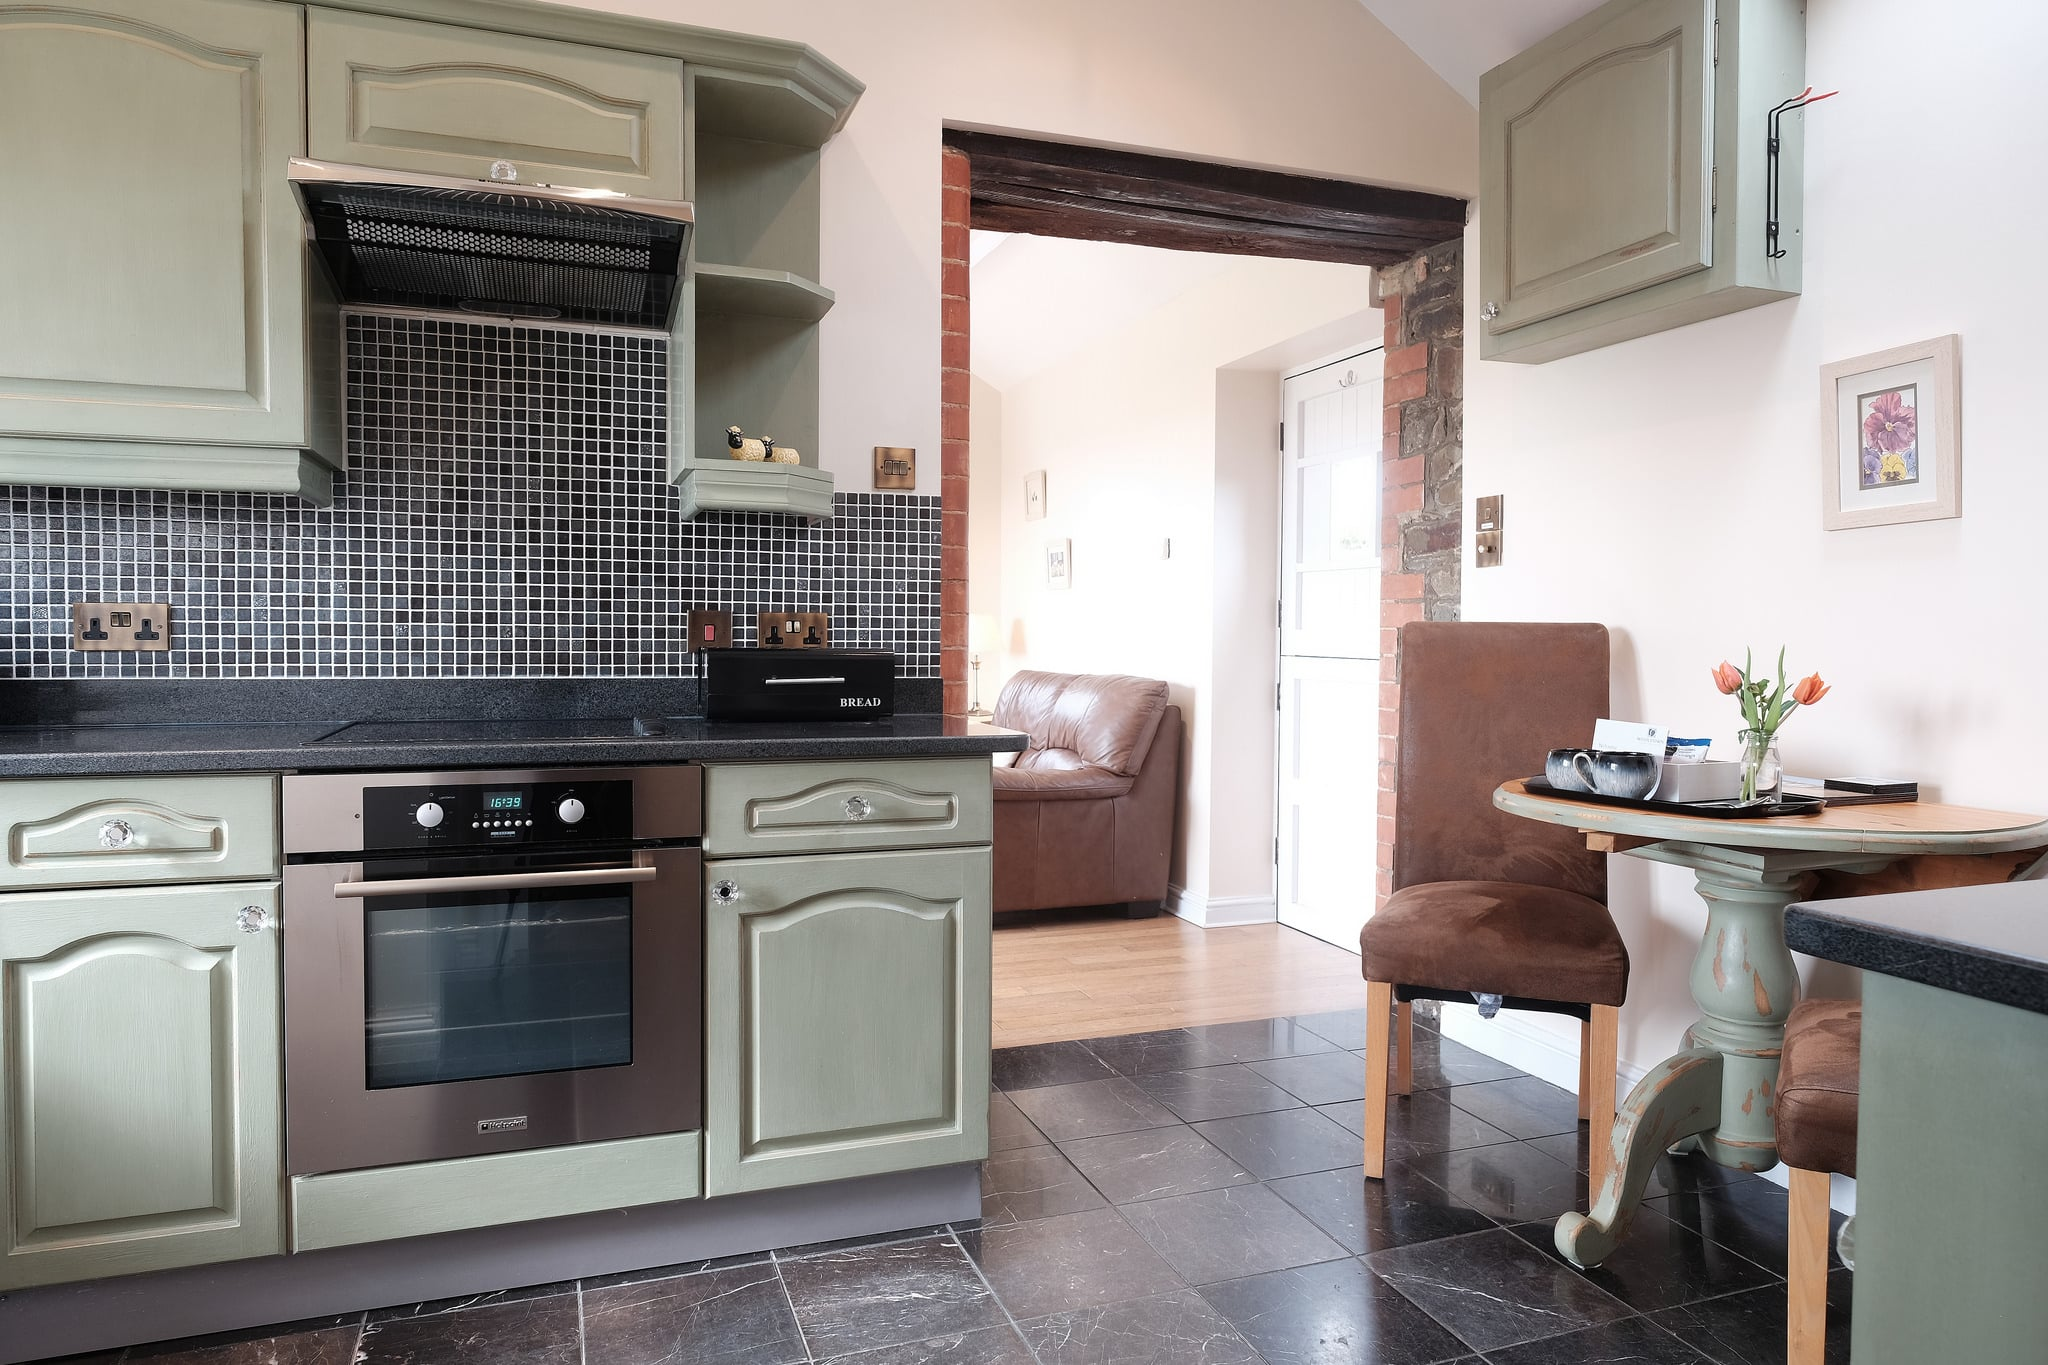 Shabby chic kitchen with dining area just for two